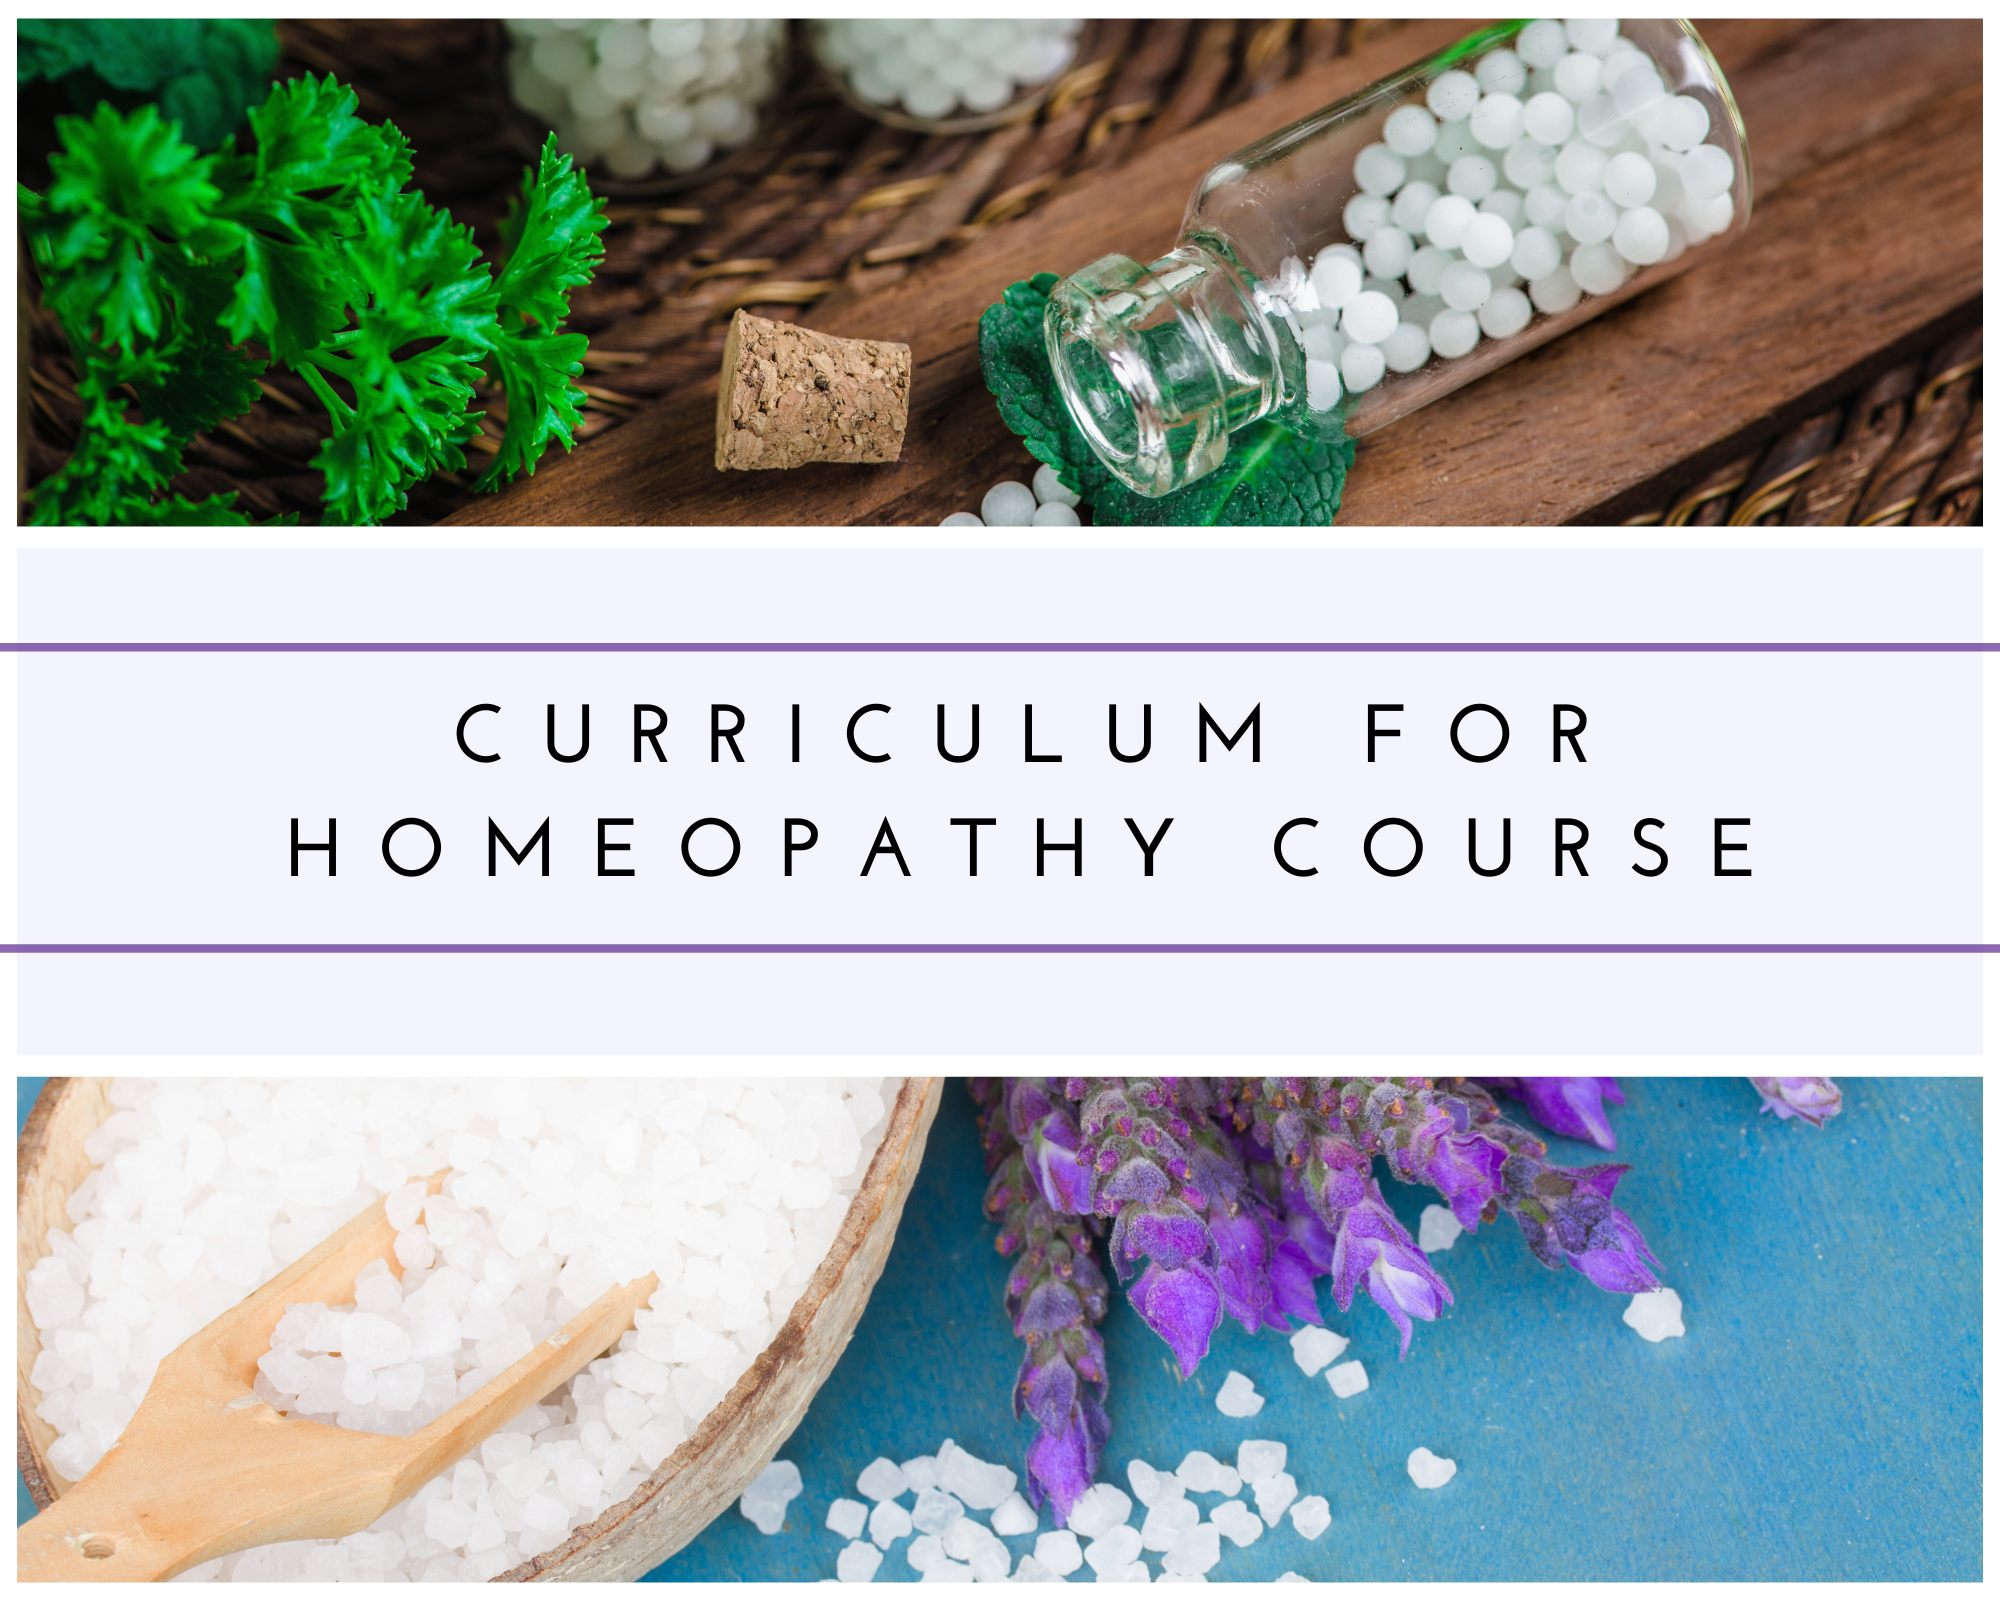 CURRICULUM FOR HOMEOPATHY COURSE